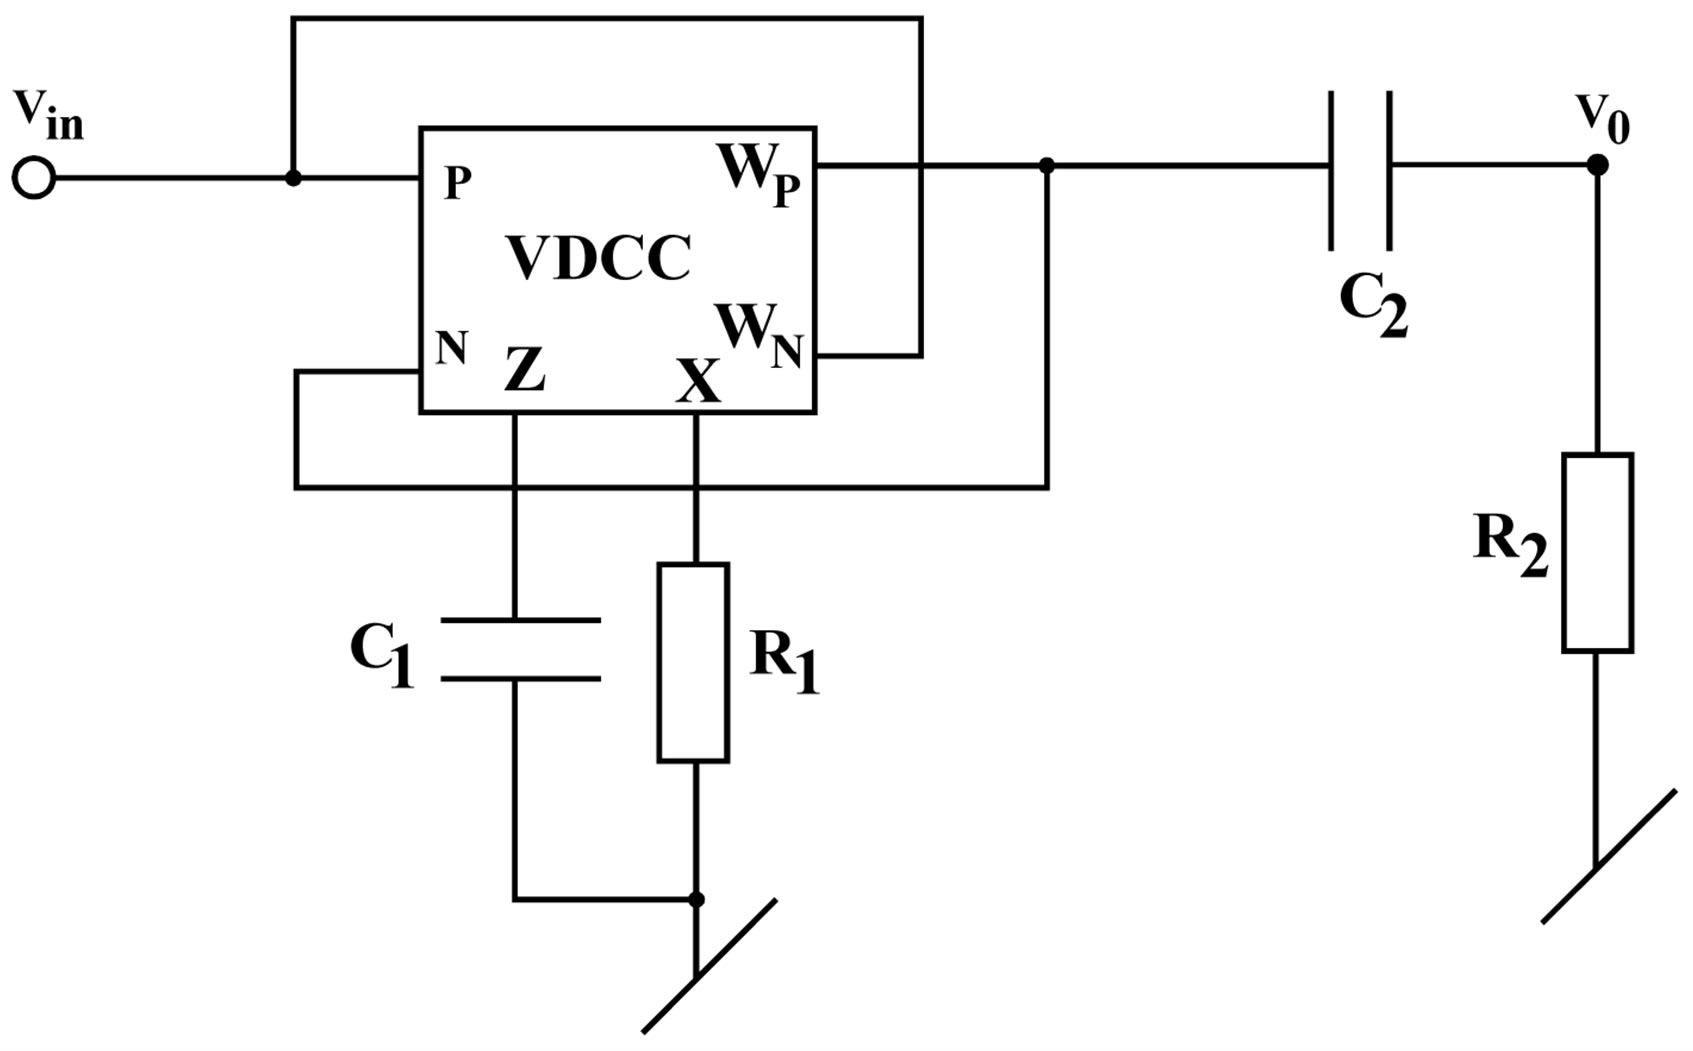 New Electronically Controllable Lossless Synthetic Floating Inductance Circuit Using Single Vdcc